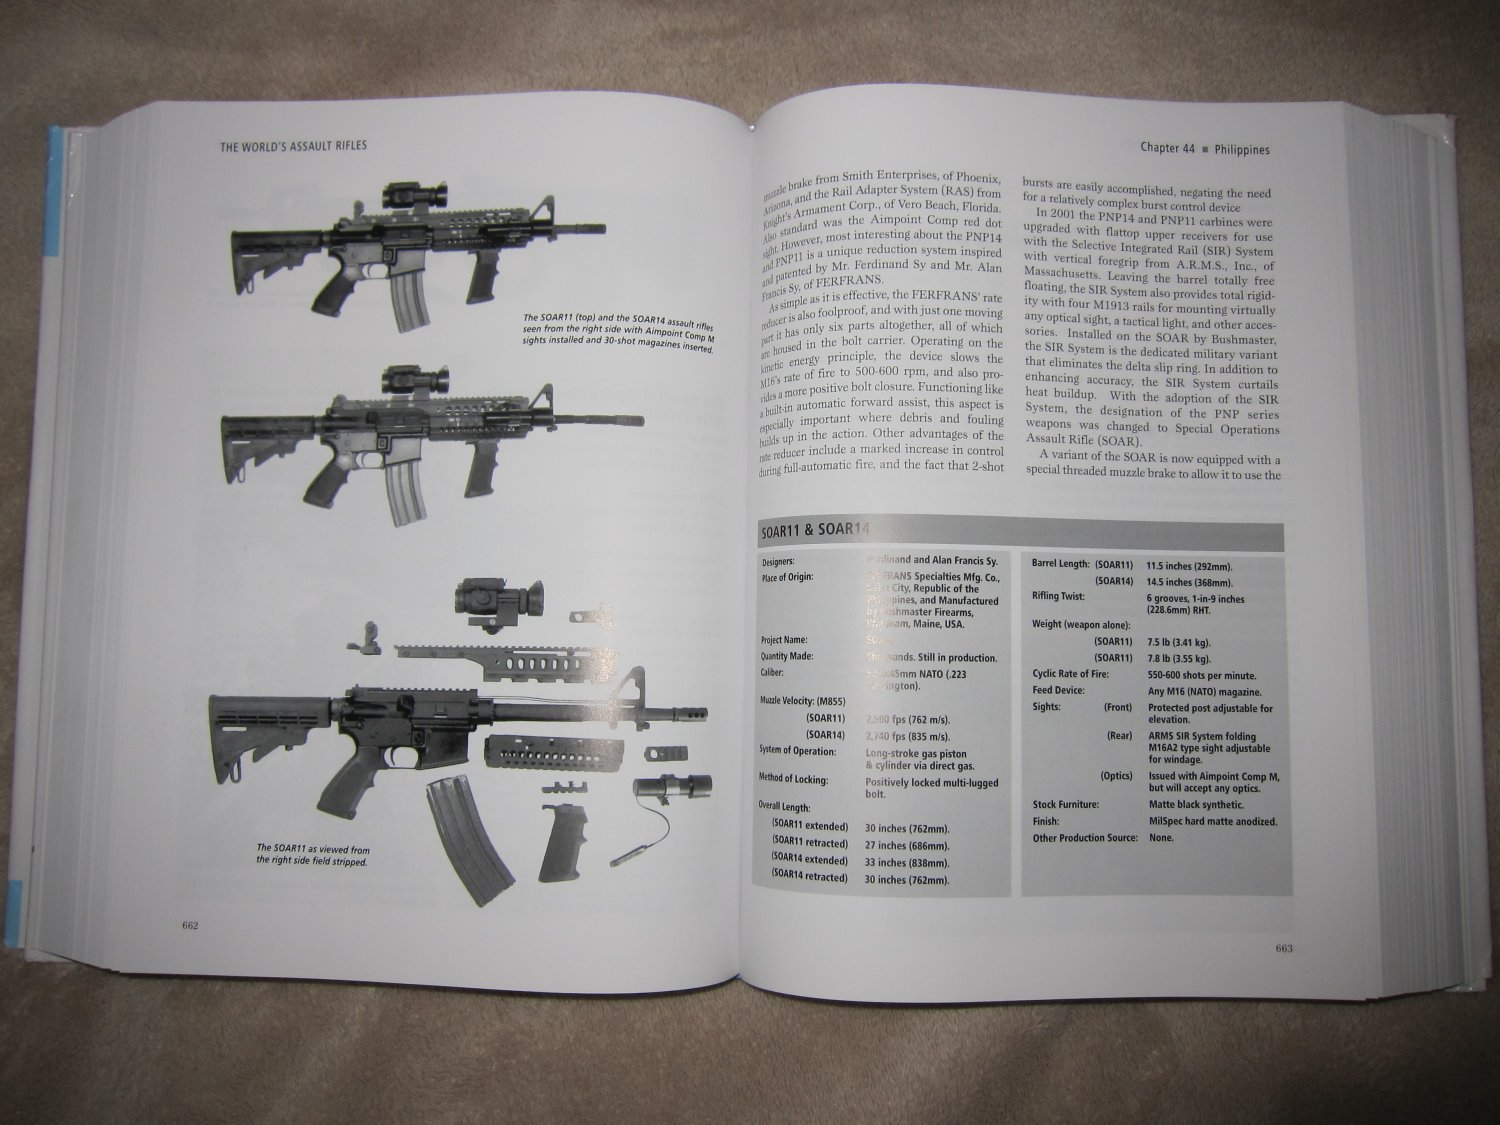 Assault Rifles of the World Book Gary Paul Johnston 4 <!  :en  >The Worlds Assault Rifles: Best and Most Complete Book on Military Infantry Assault Rifles (and Battle Rifles) Ever Written?  DefenseReview (DR) Highly Recommends It!<!  :  >